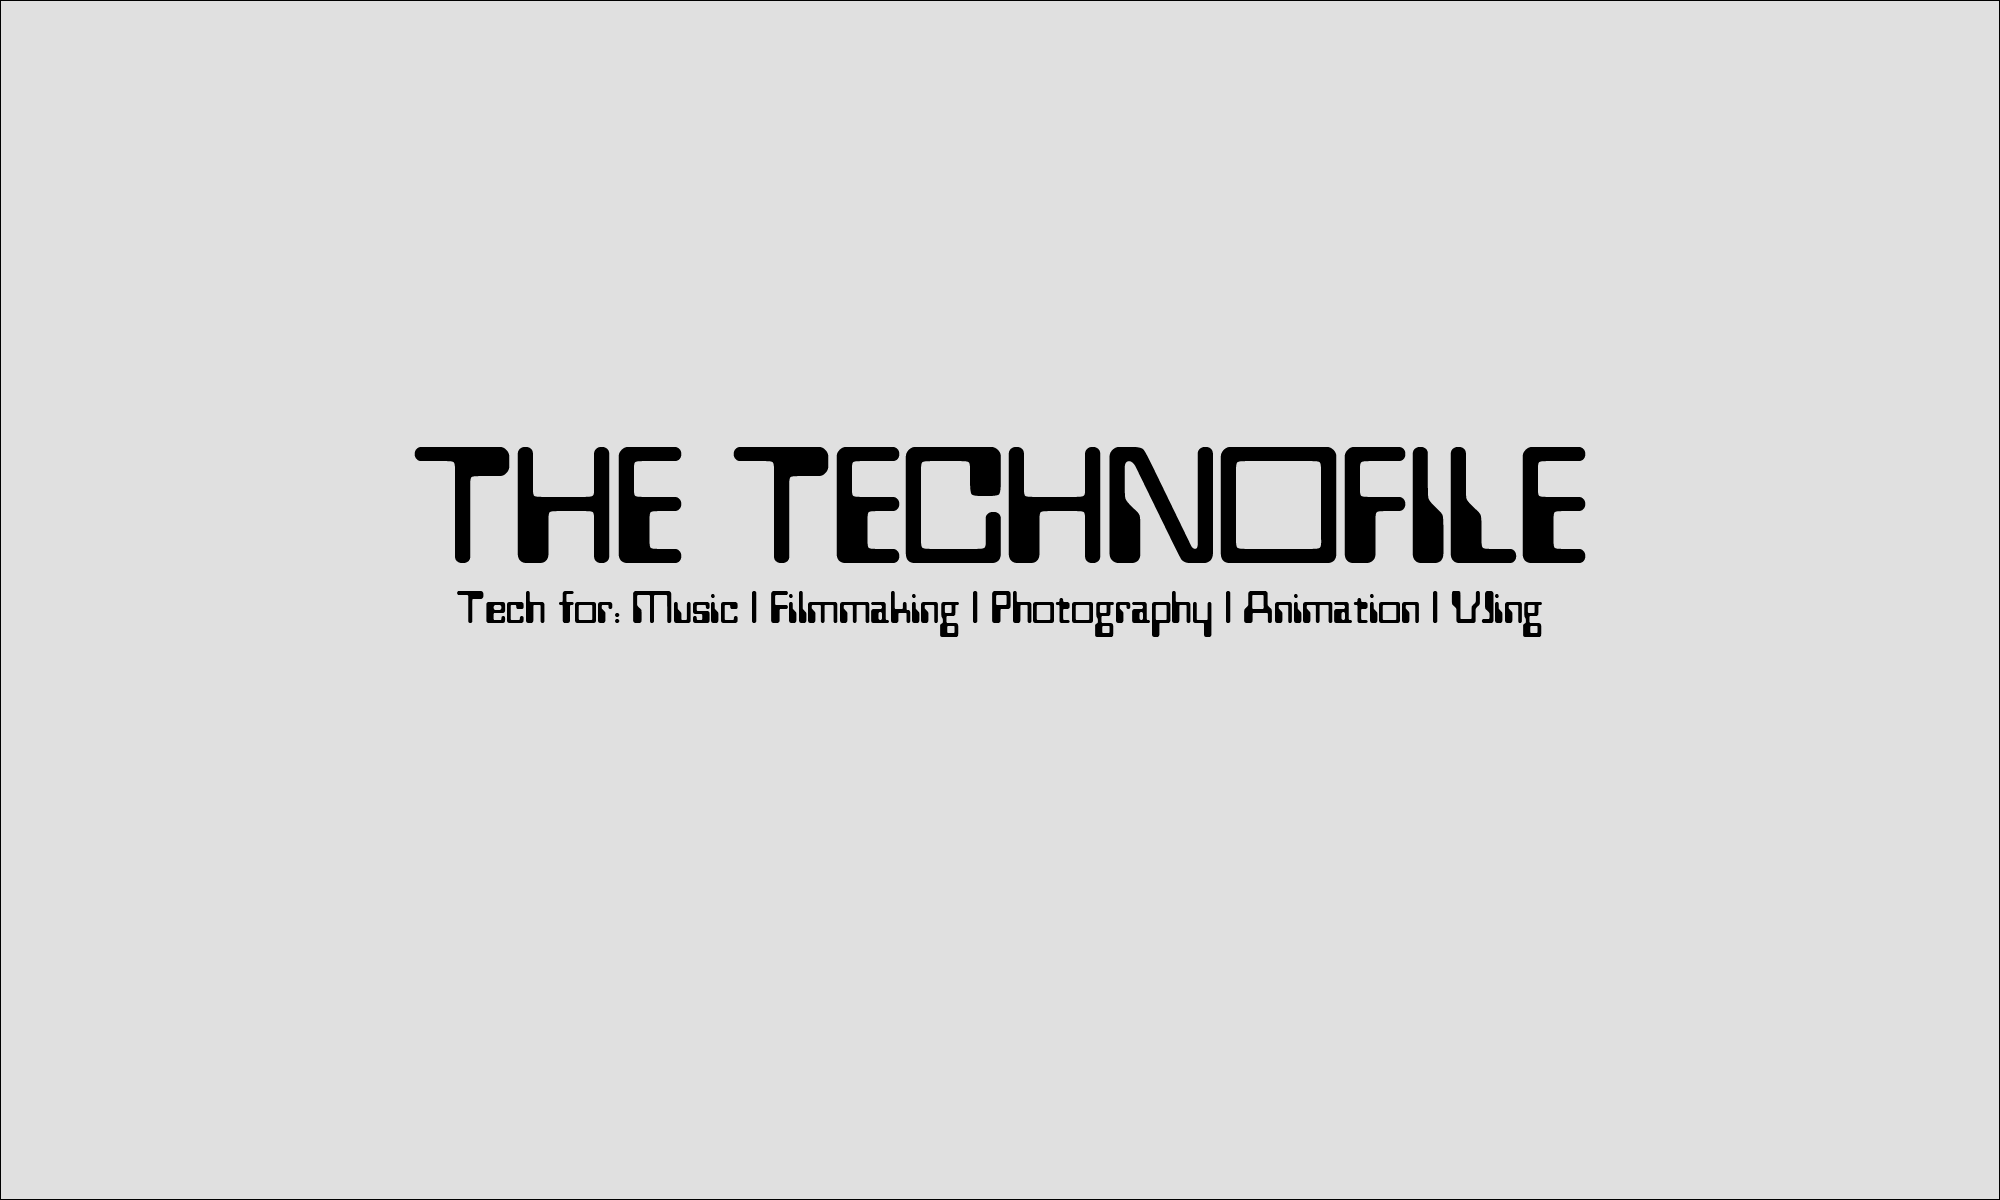 The Technofile